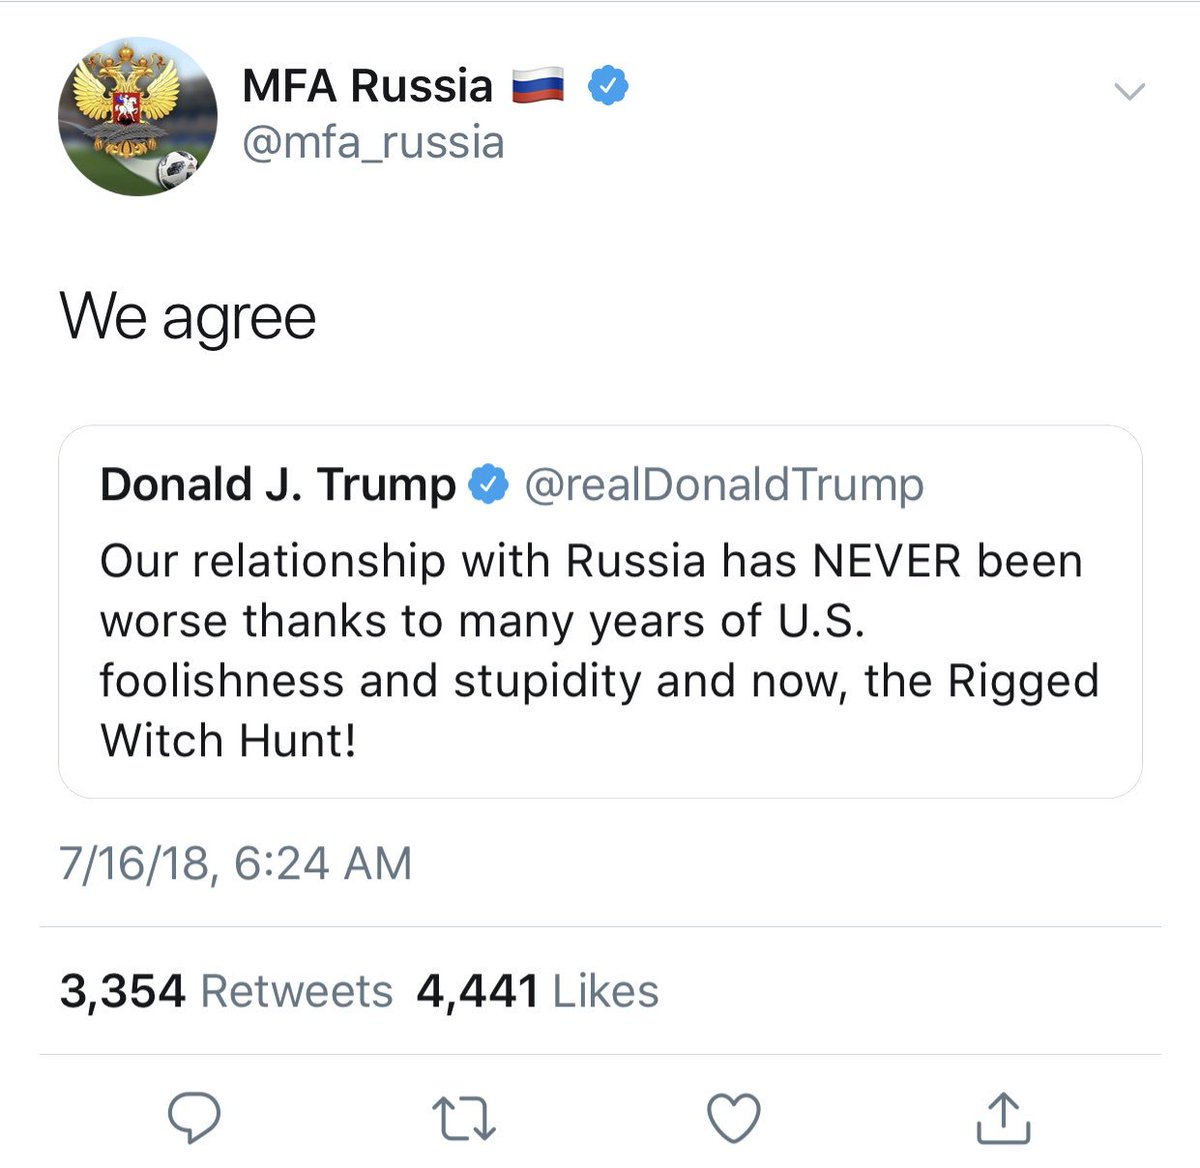 When the Russian Foreign Ministry tweets its agreement to an America president publicly attacking and blaming his own country. I feel like I'm in the twilight zone! #treasonsummit